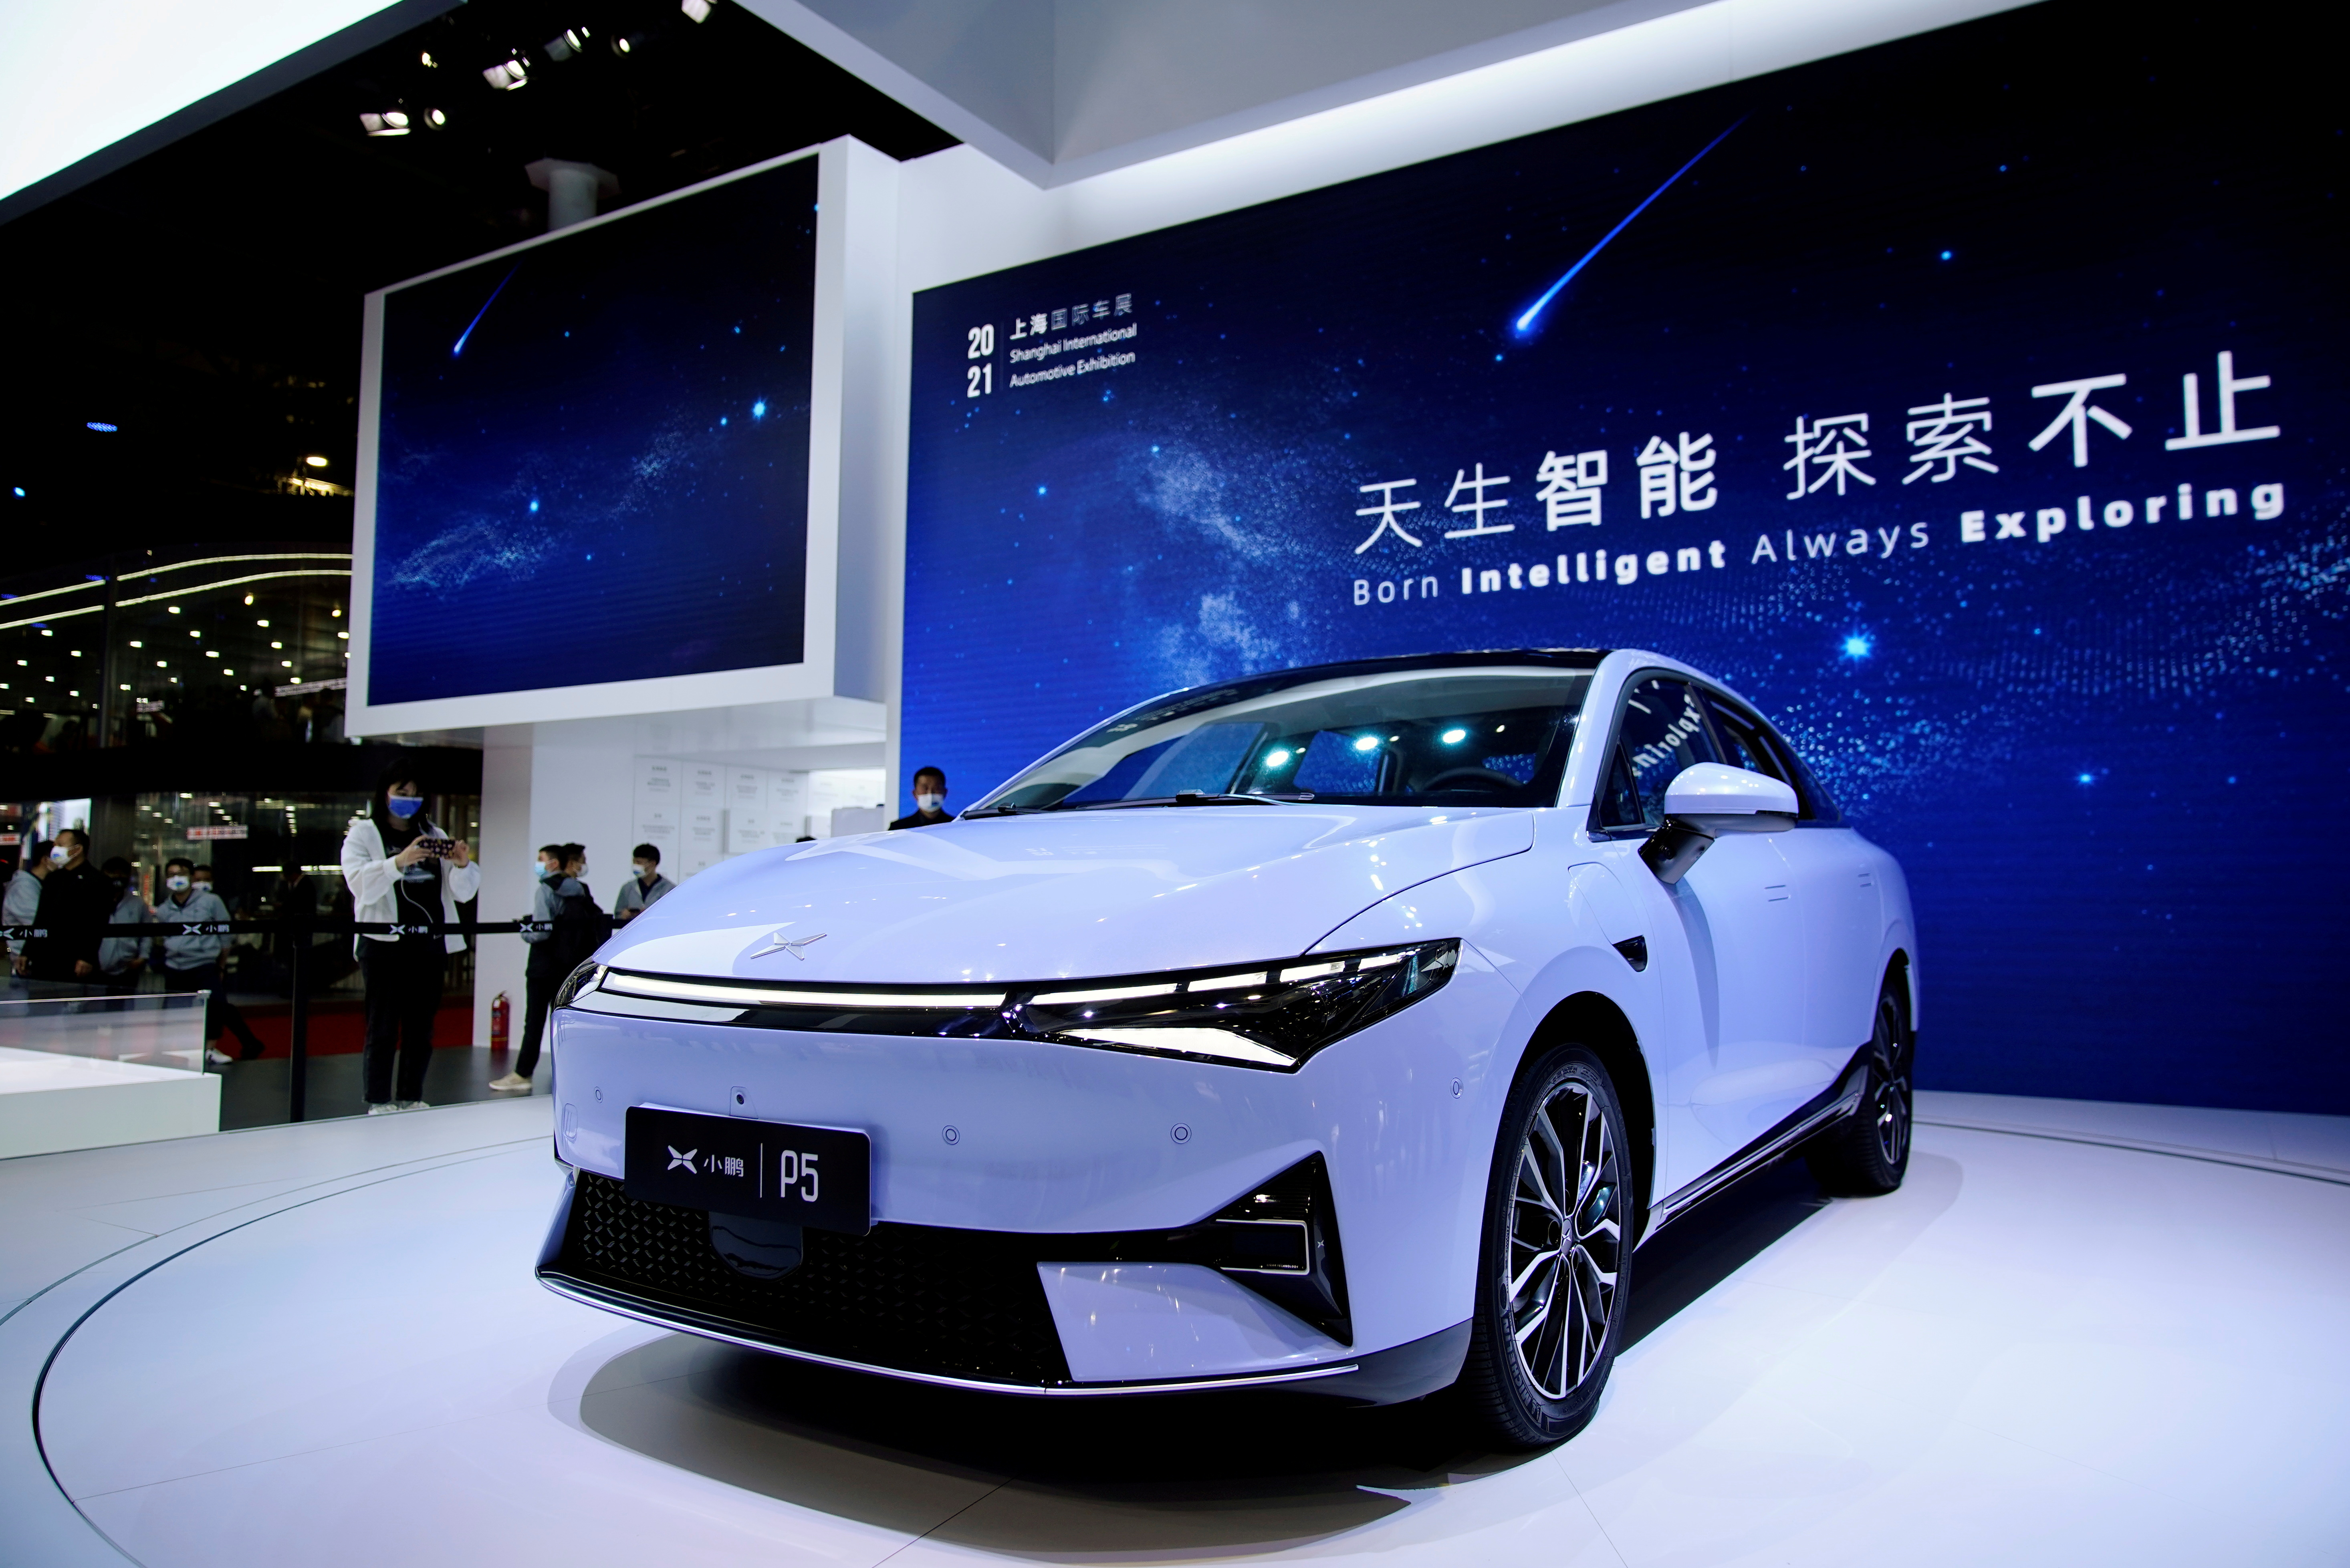 An Xpeng P5 electric vehicle (EV) is seen displayed during a media day for the Auto Shanghai show in Shanghai, China April 19, 2021. REUTERS/Aly Song/File Photo